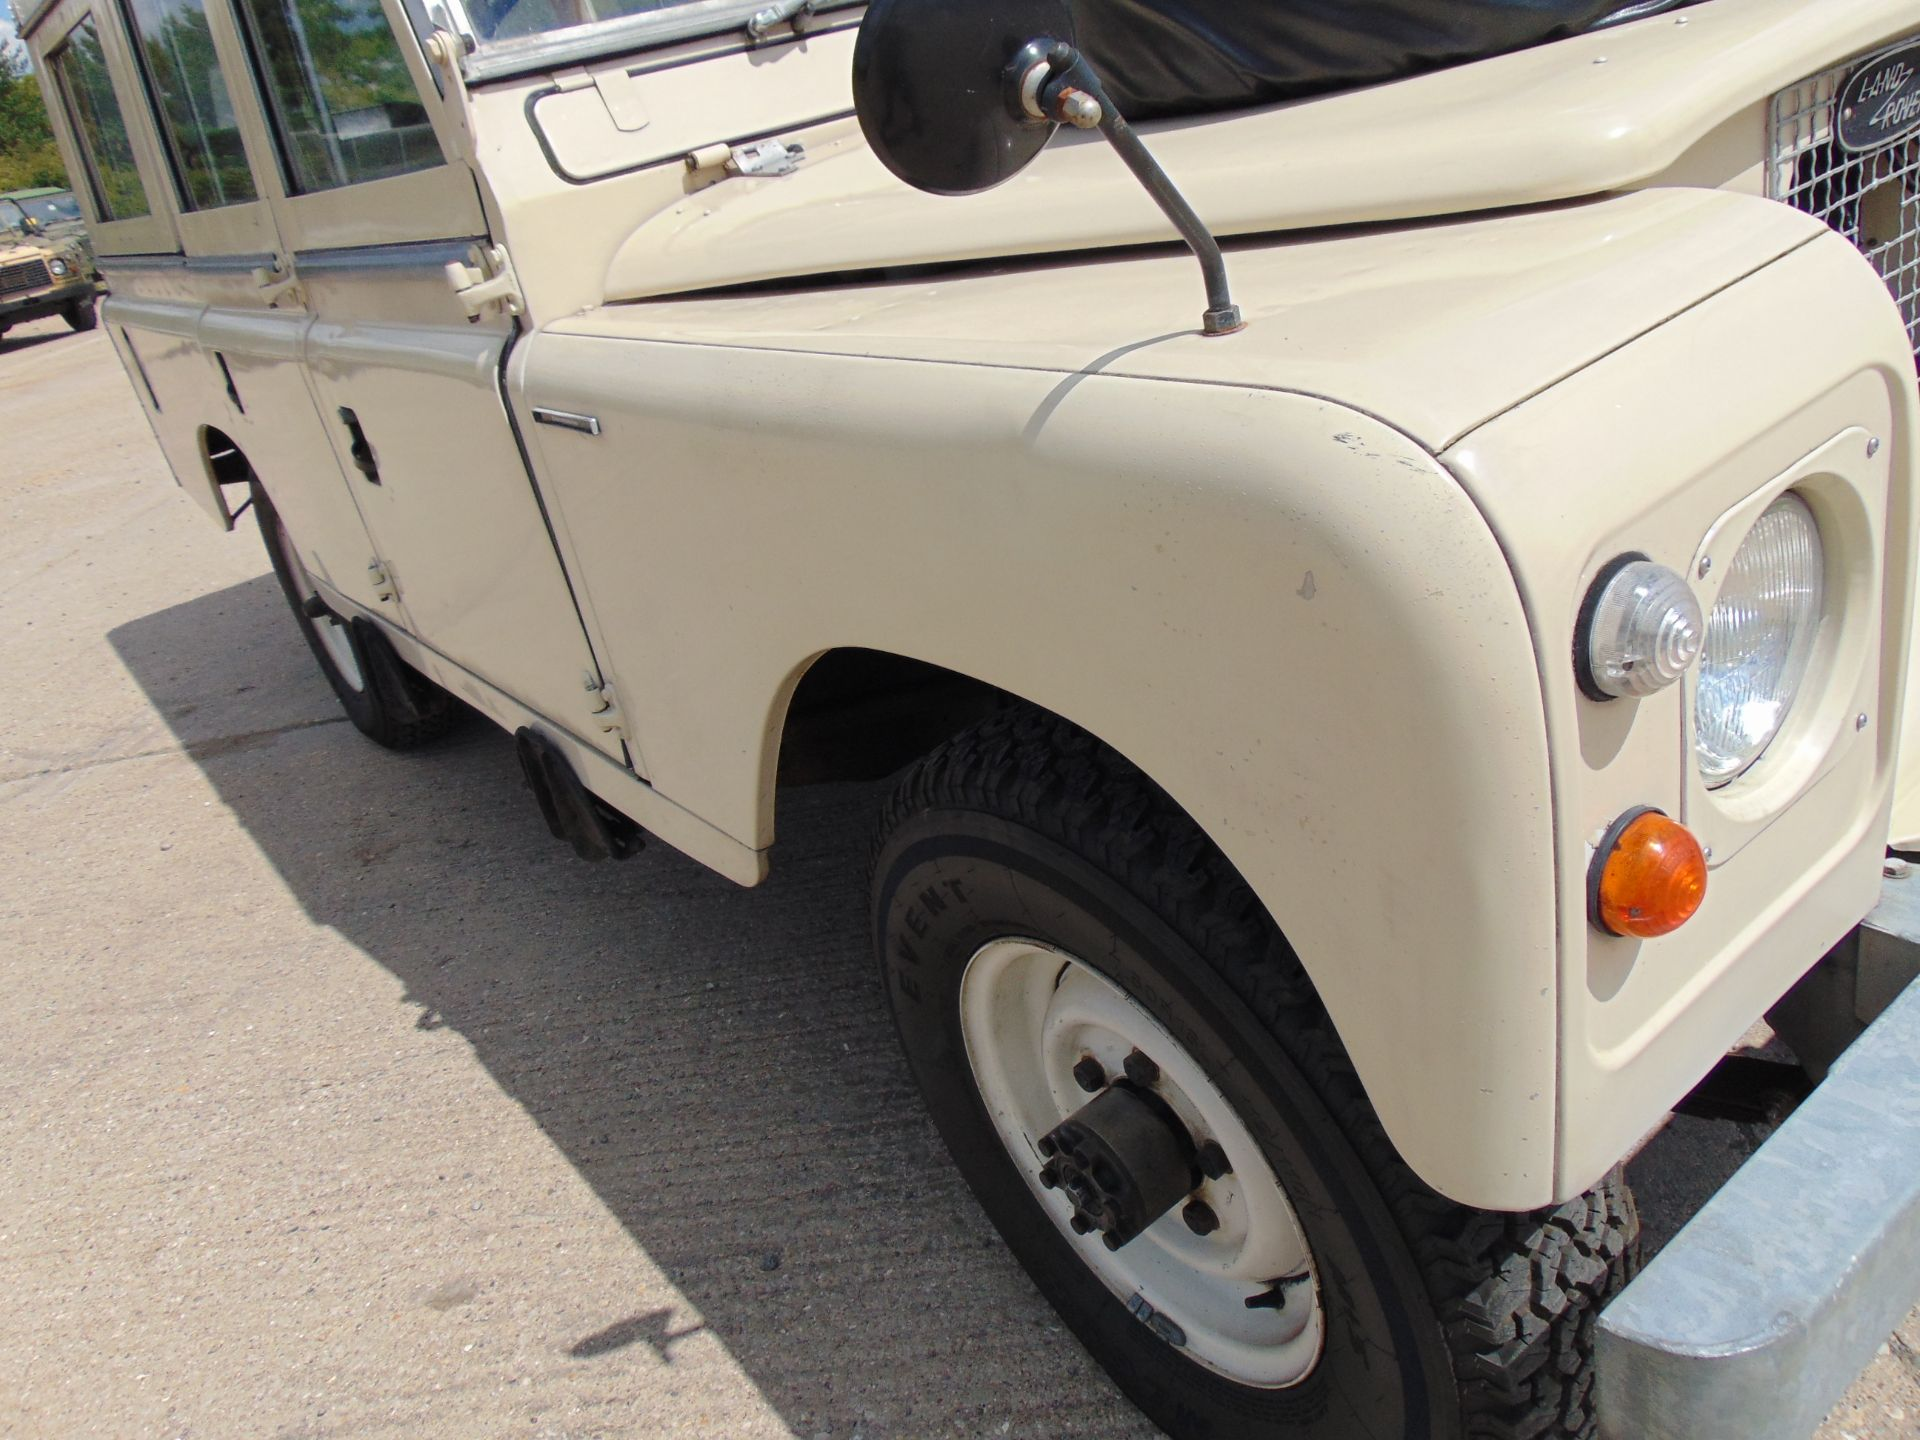 Lot 38 - Stunning 1971 Land Rover Series IIA Dormobile Carawagon